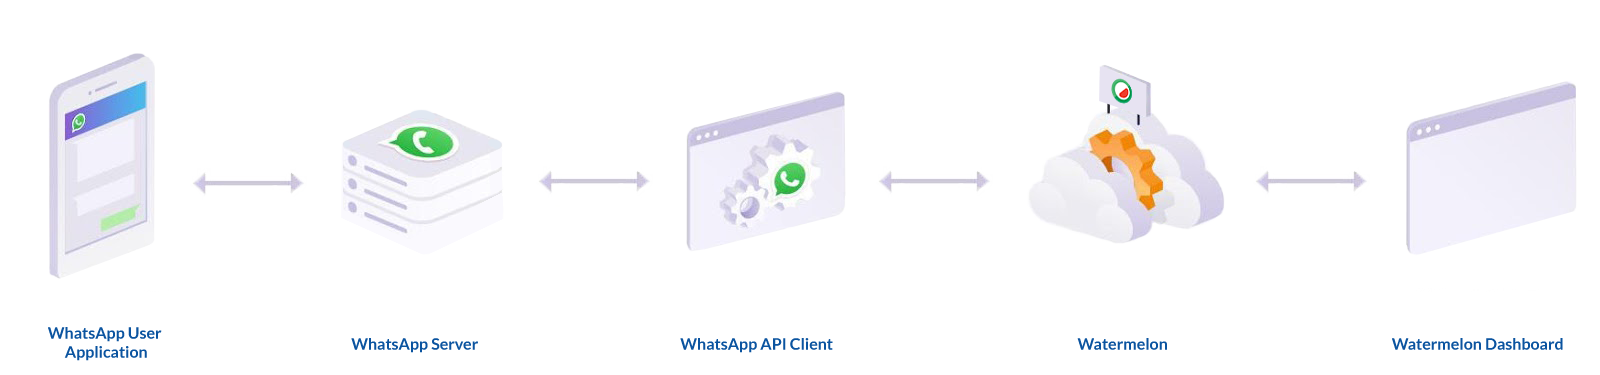 Whatsapp api server infrastructuur